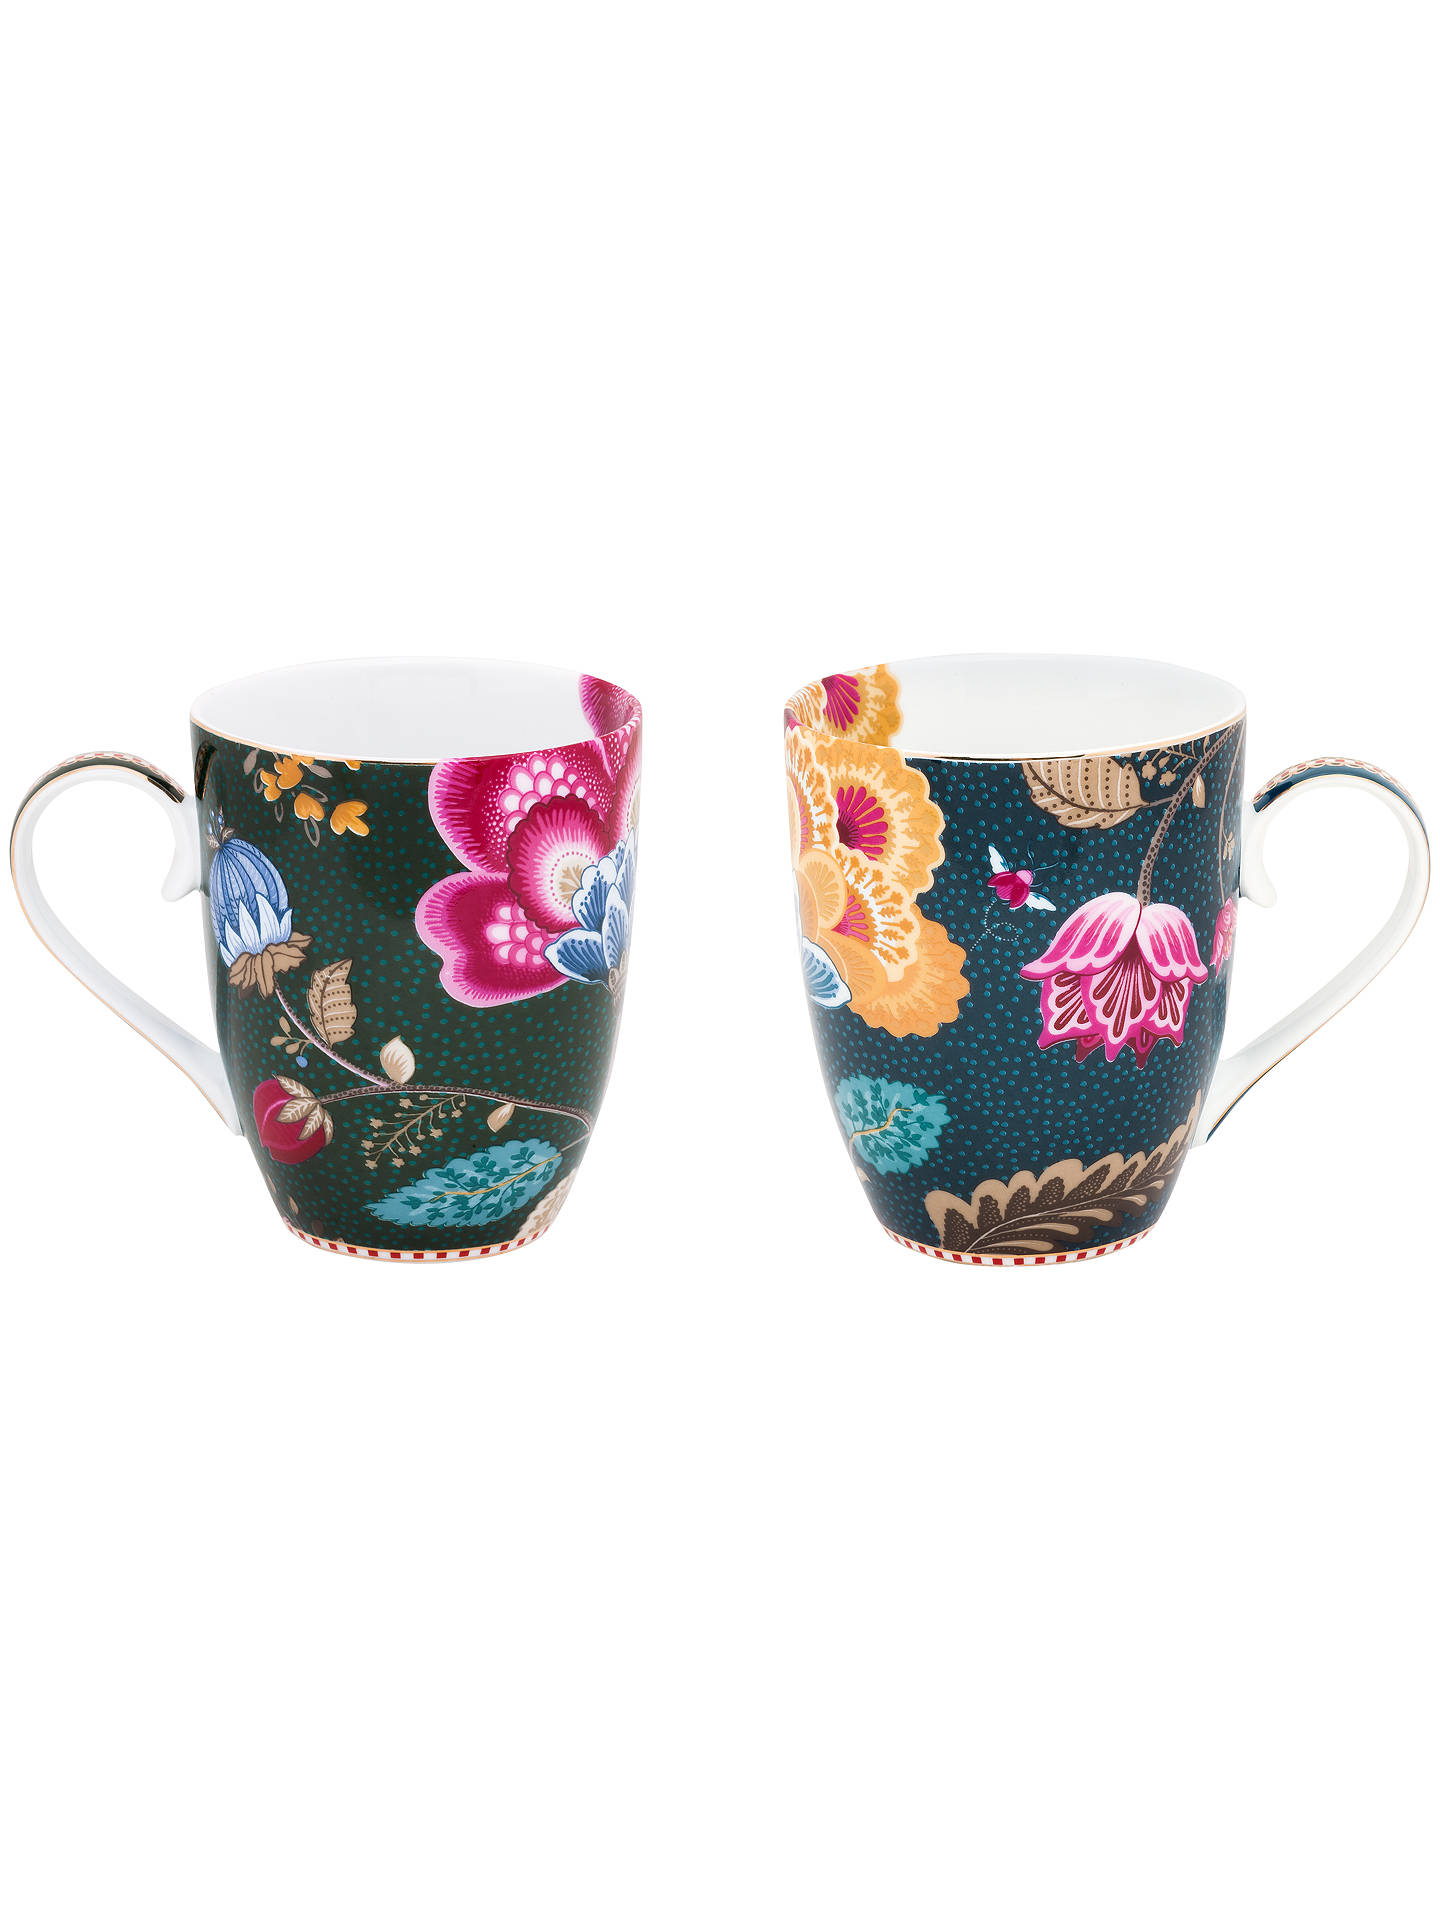 BuyPiP Studio Floral Fantasy Porcelain Large Mugs, Set of 2, 350ml, Assorted Online at johnlewis.com